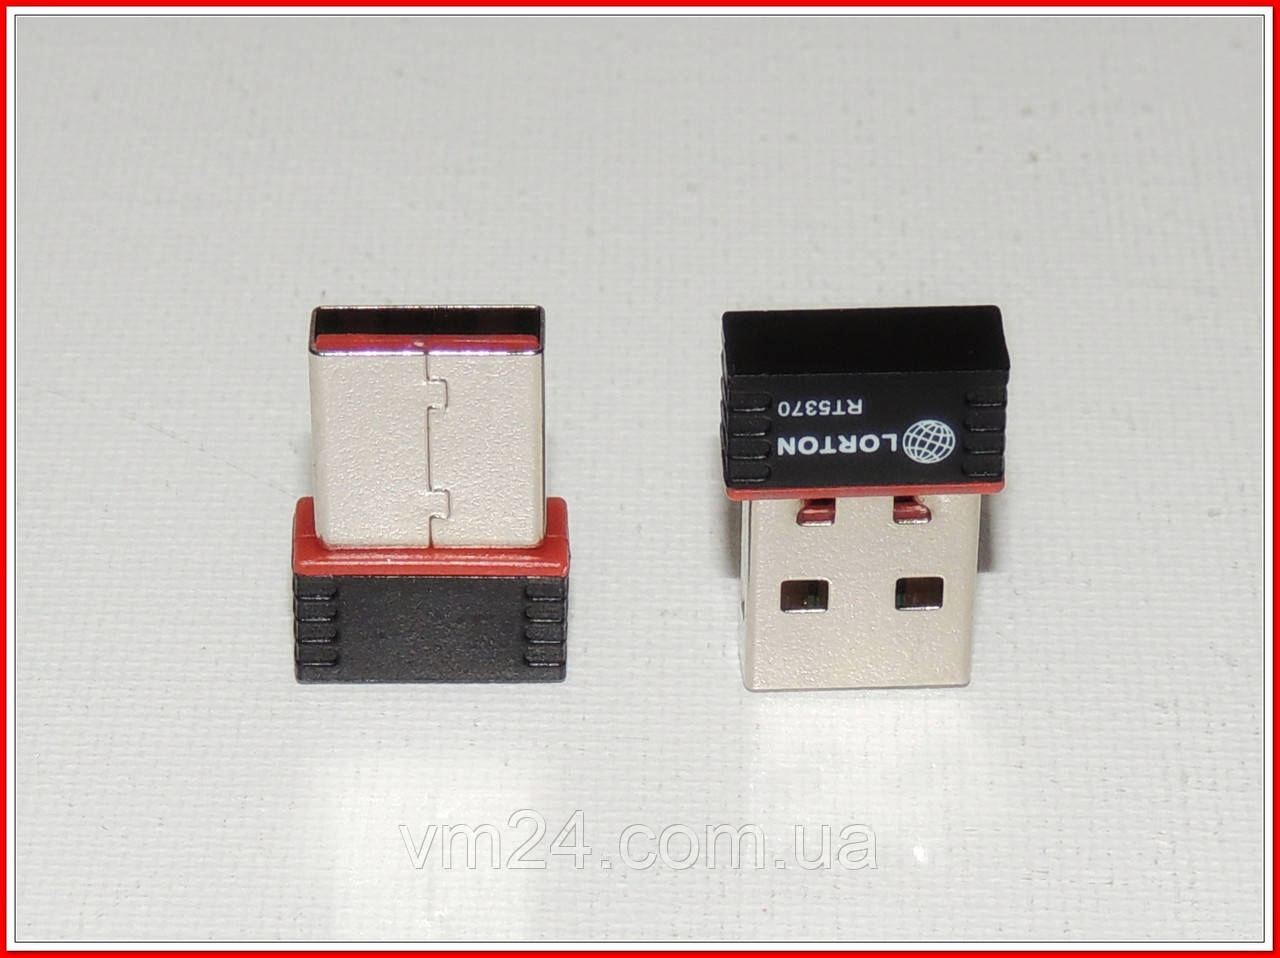 Беспроводной USB Wi-Fi Адаптер Wireless USB Ralink RT5370- Sat-Integral S-1225, S-1227, S-1237, S-1247